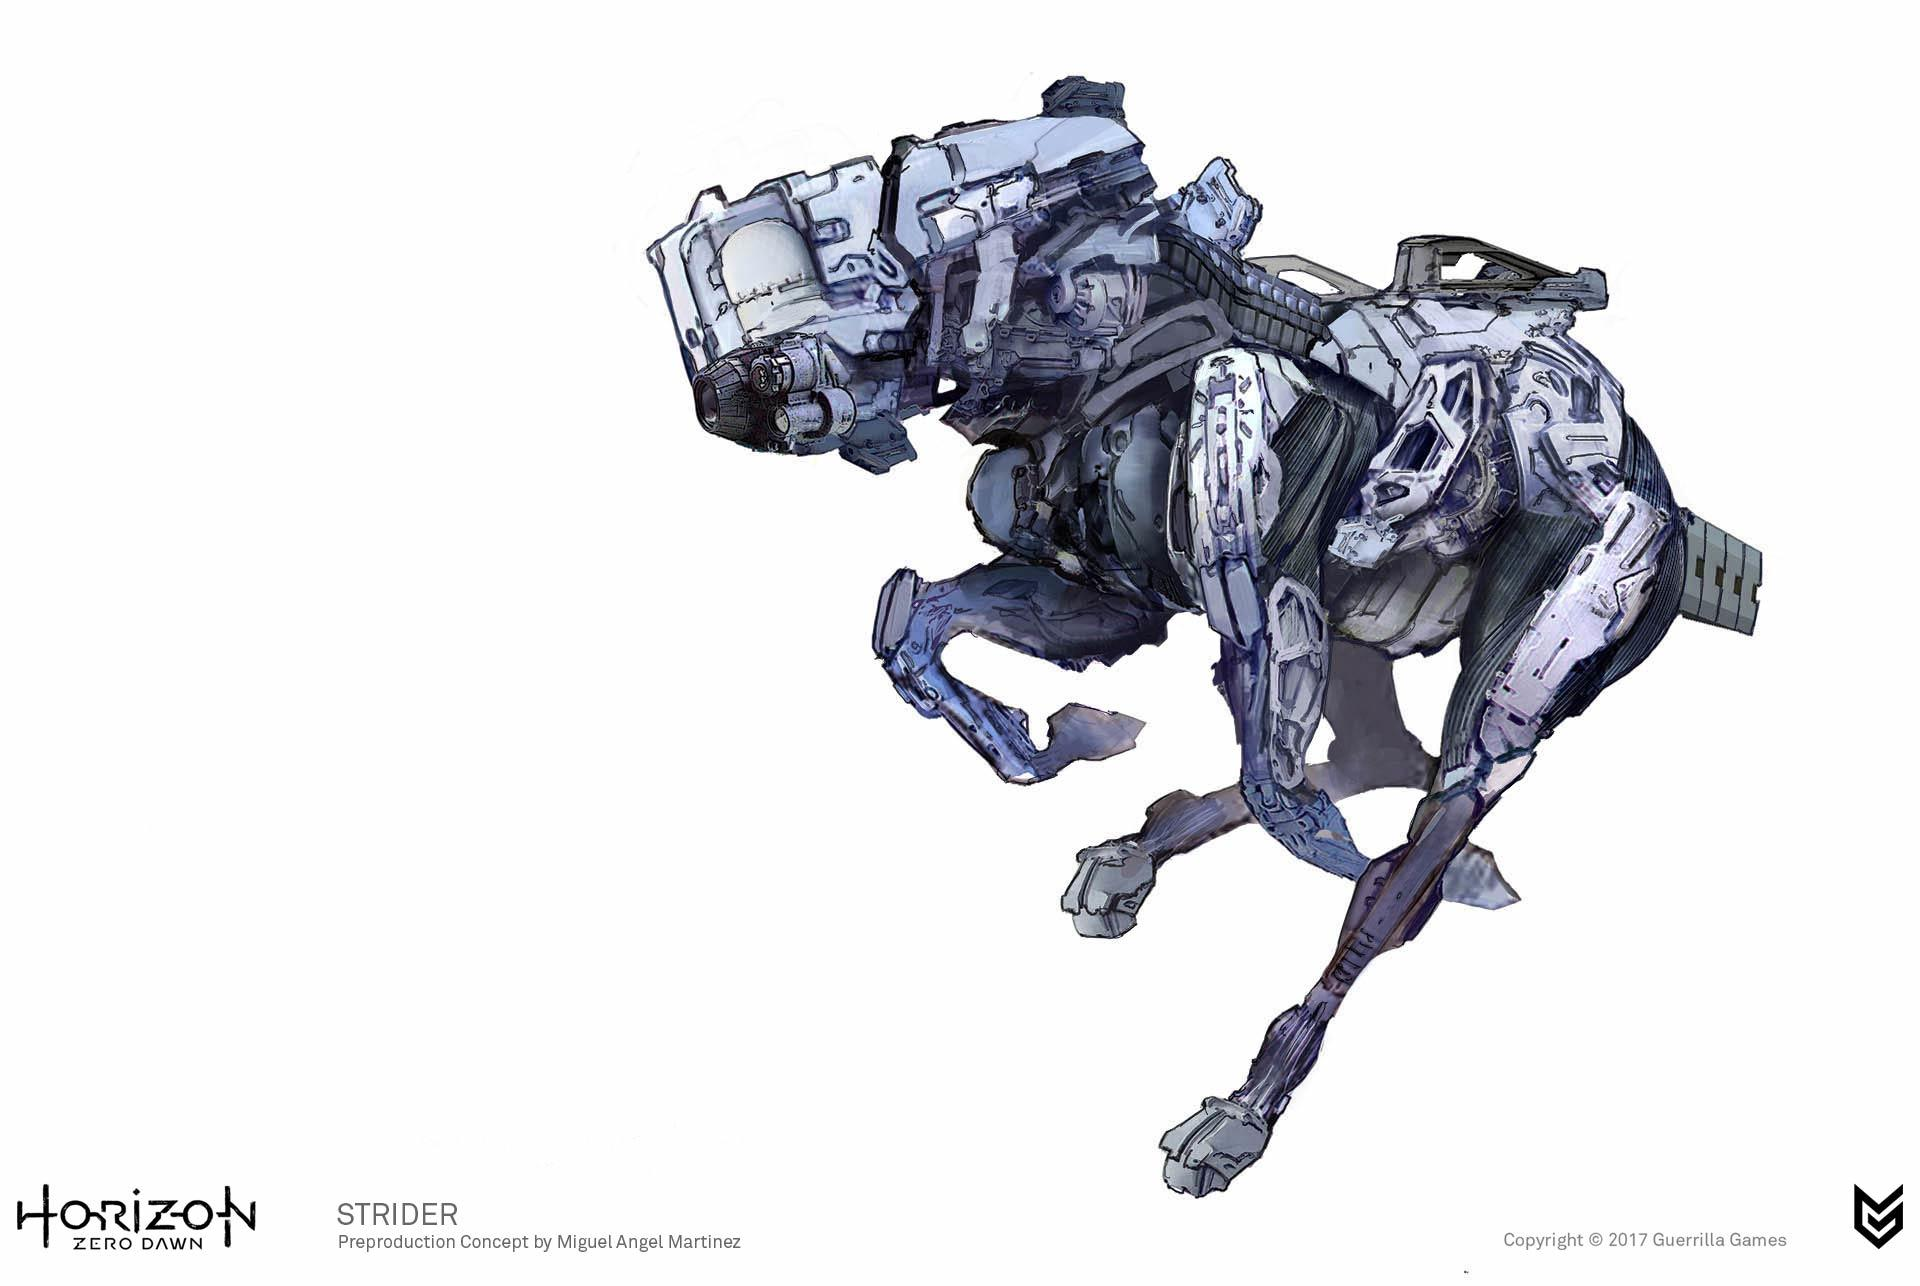 Horizon-Zero-Dawn-Strider-robot-concept-art-2-Miguel-Angel-Martinez